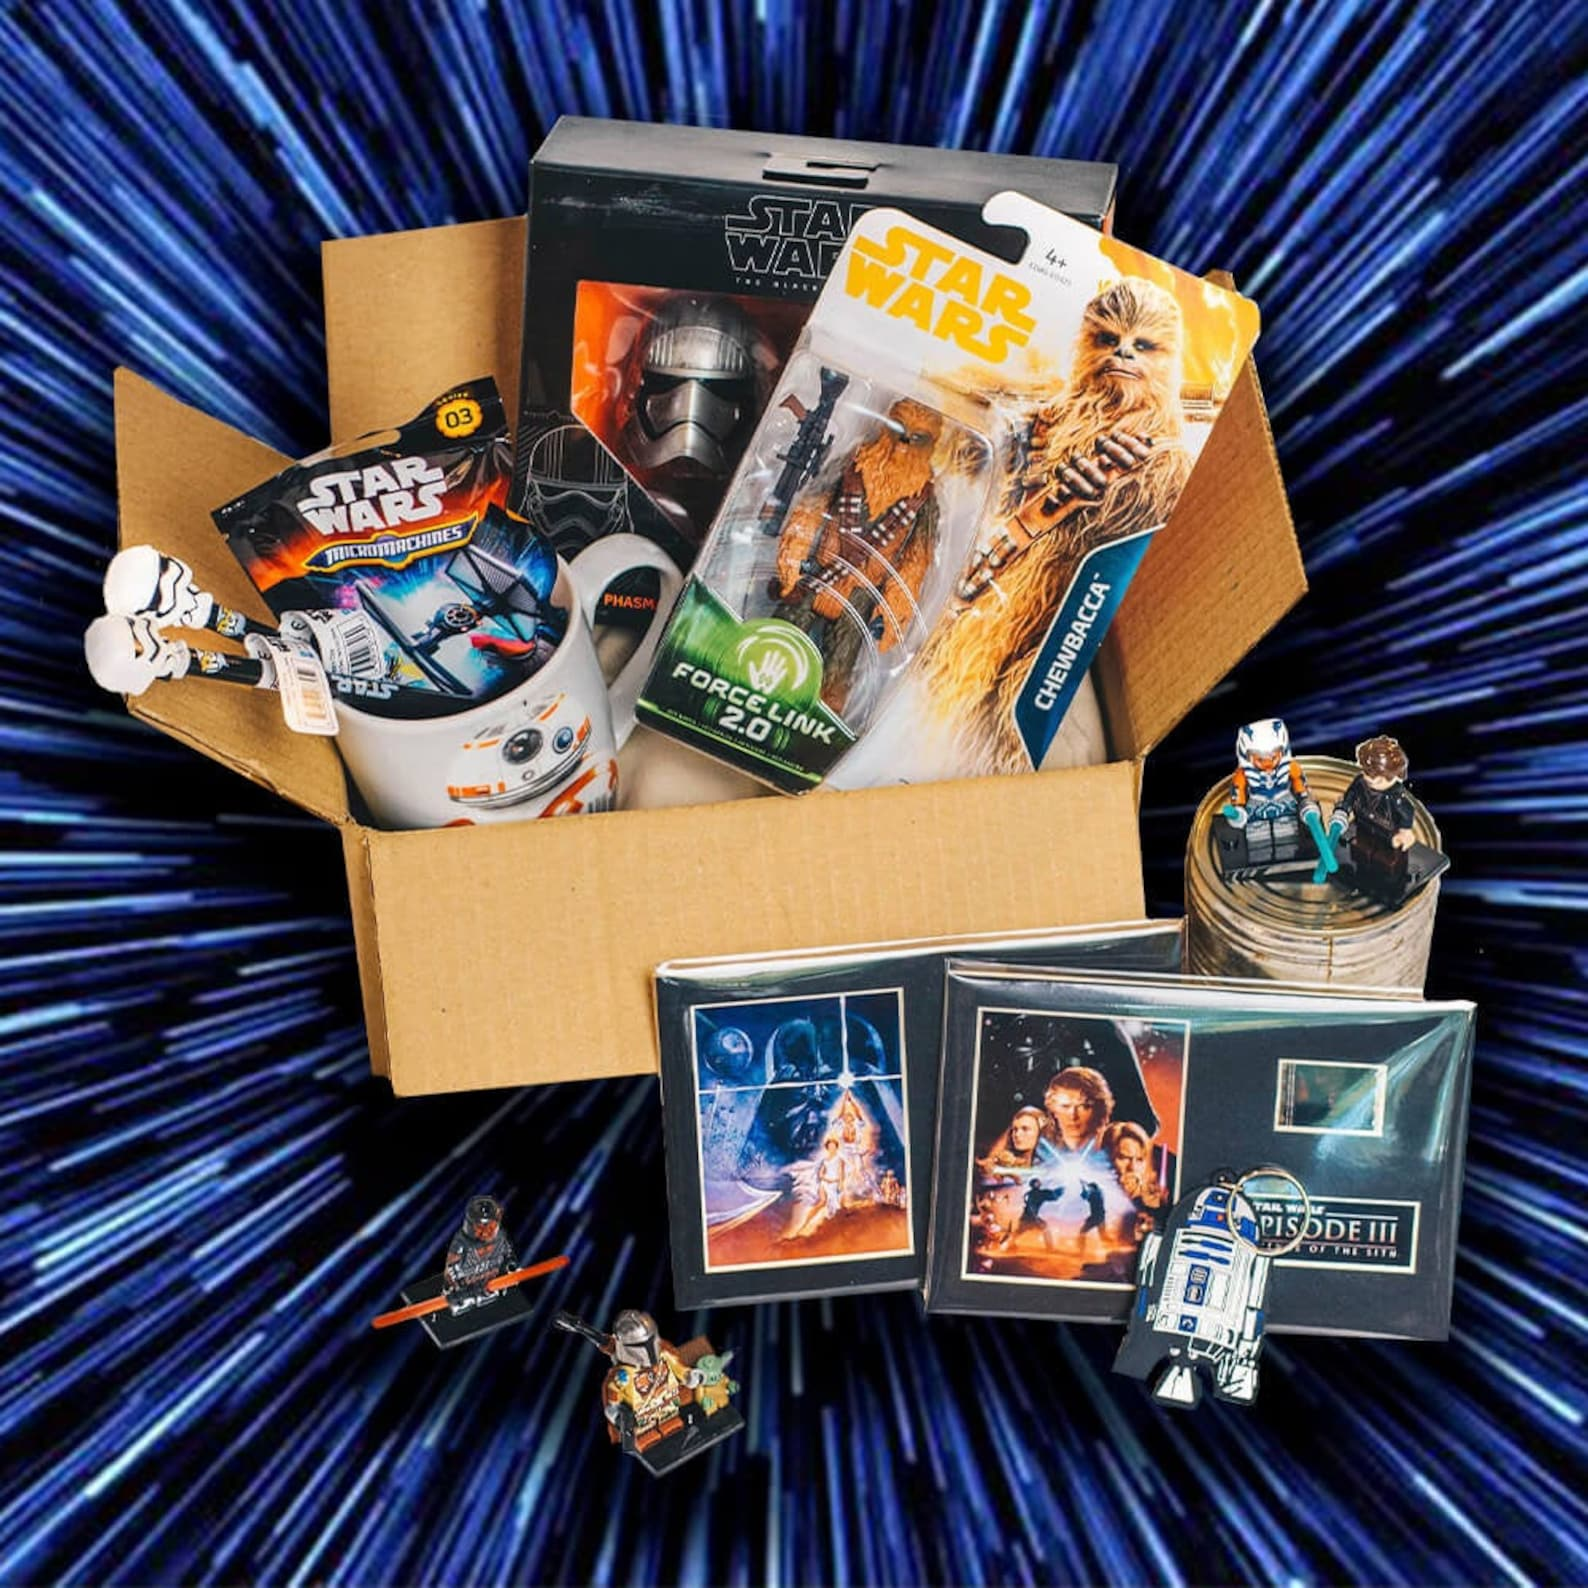 Star Wars Mystery Box Smugglers Crate